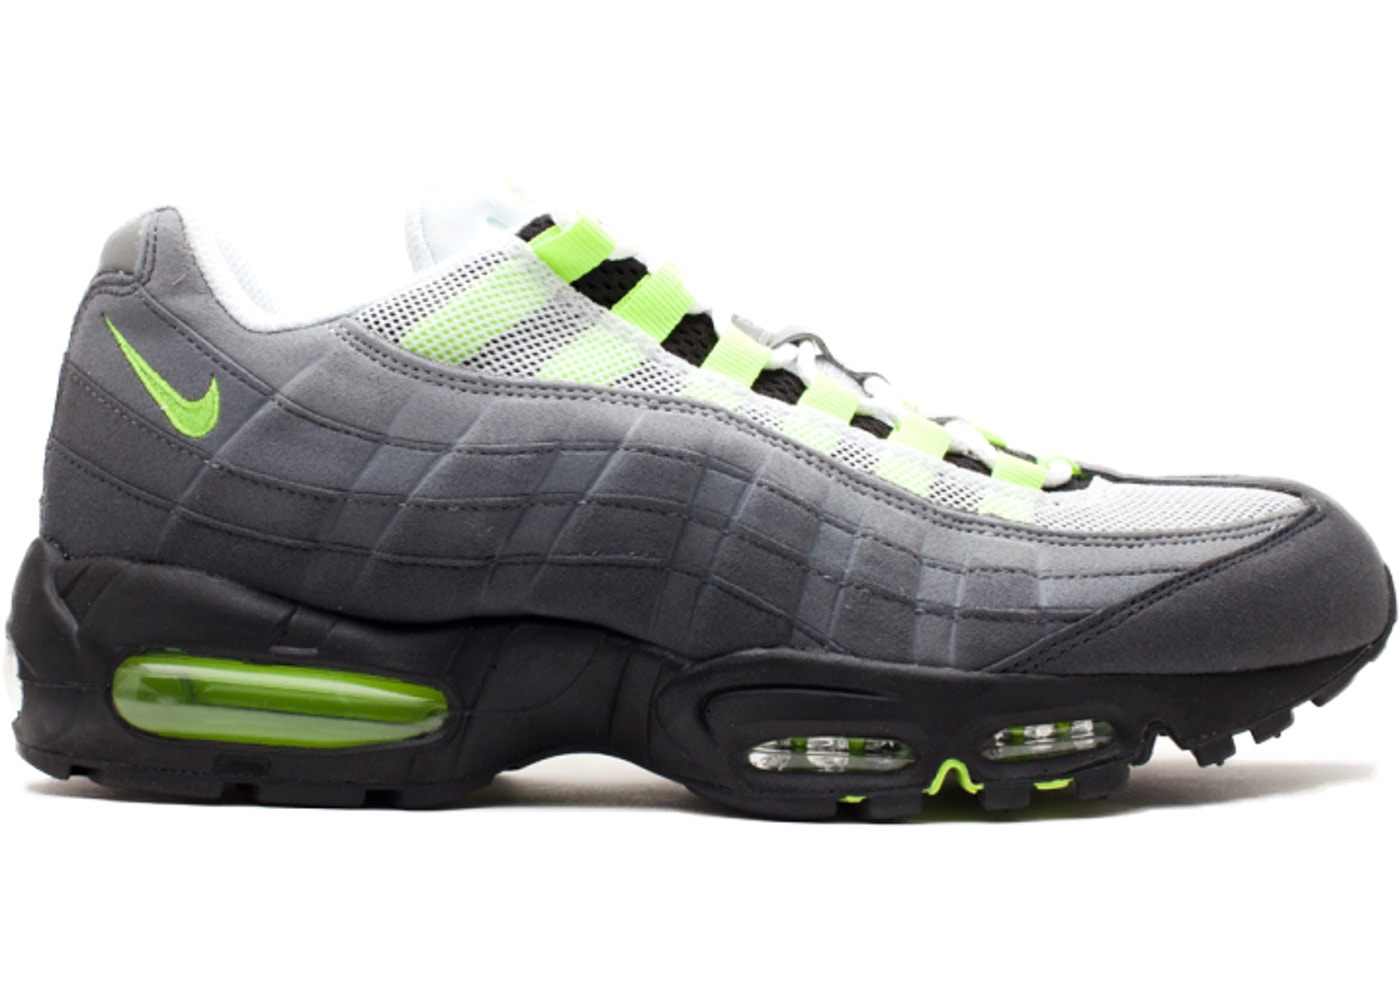 the best attitude f0d01 a89a5 Air Max 95 OG Neon (2012)